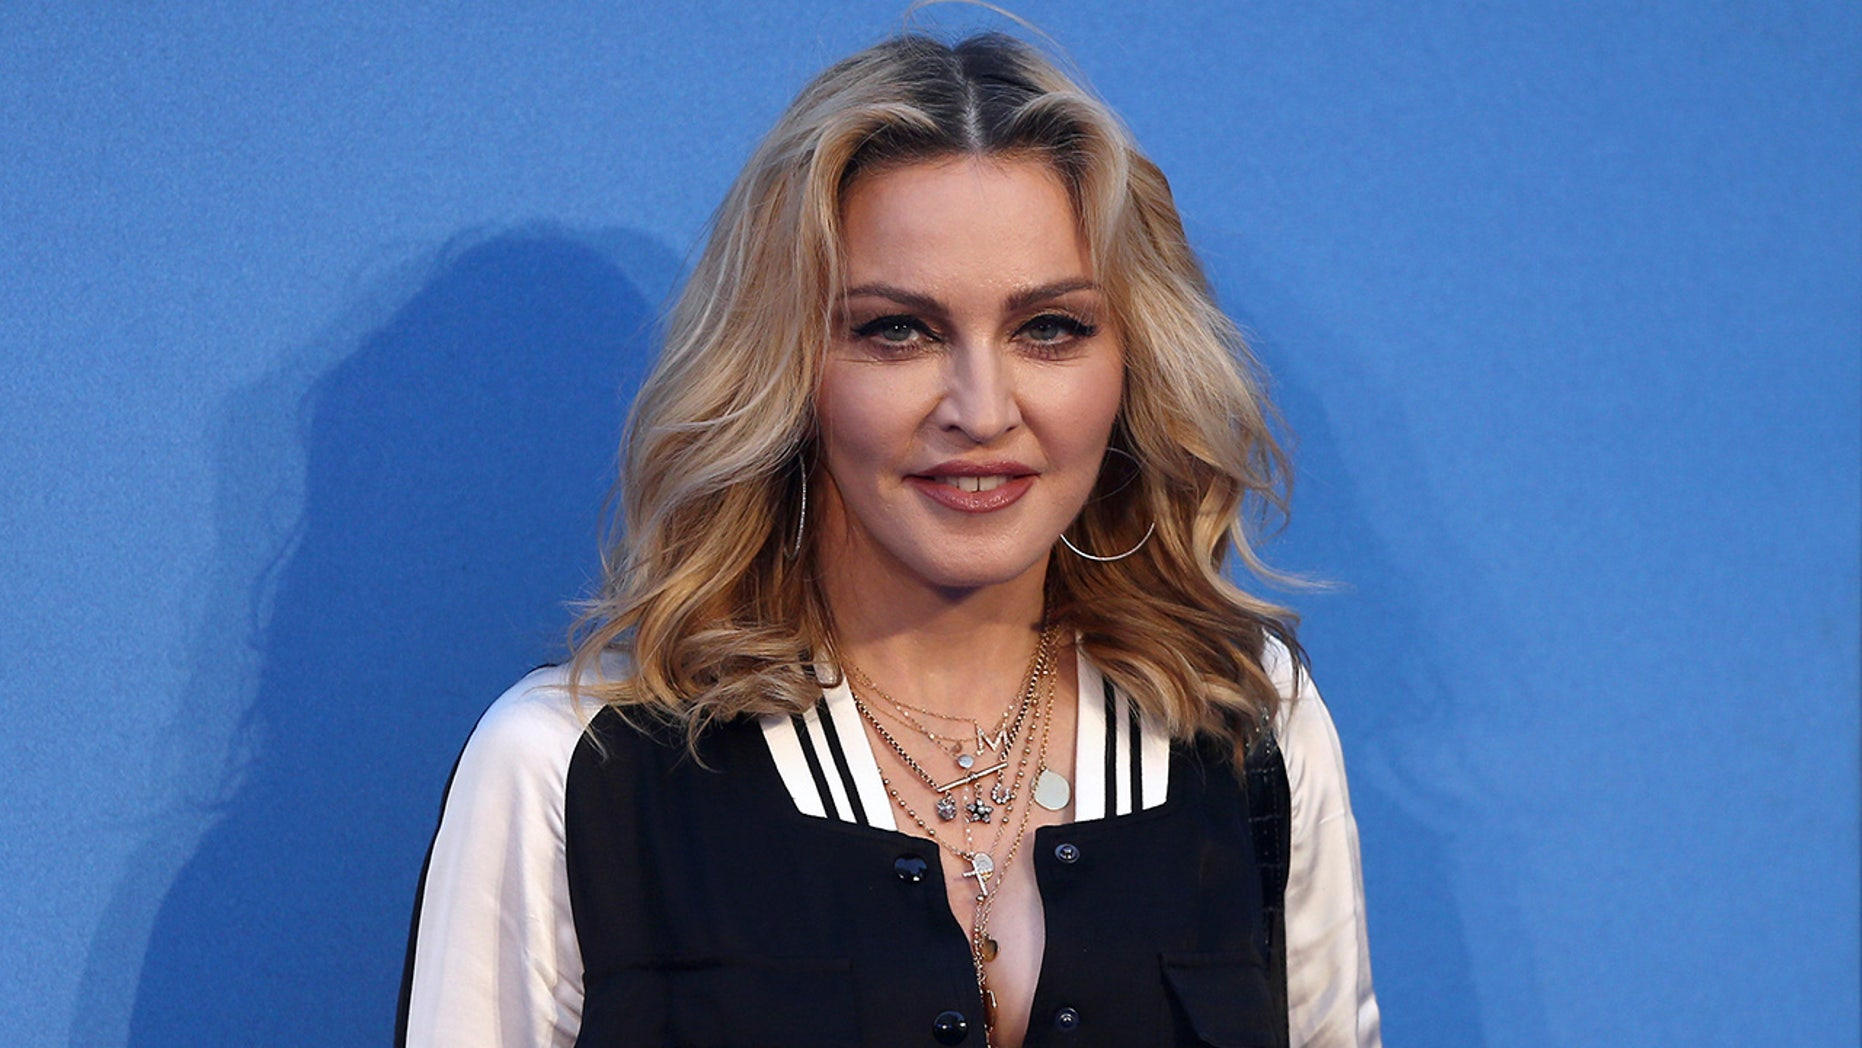 Madonna's Manhattan neighbors are reportedly fed up with her constant litigation.